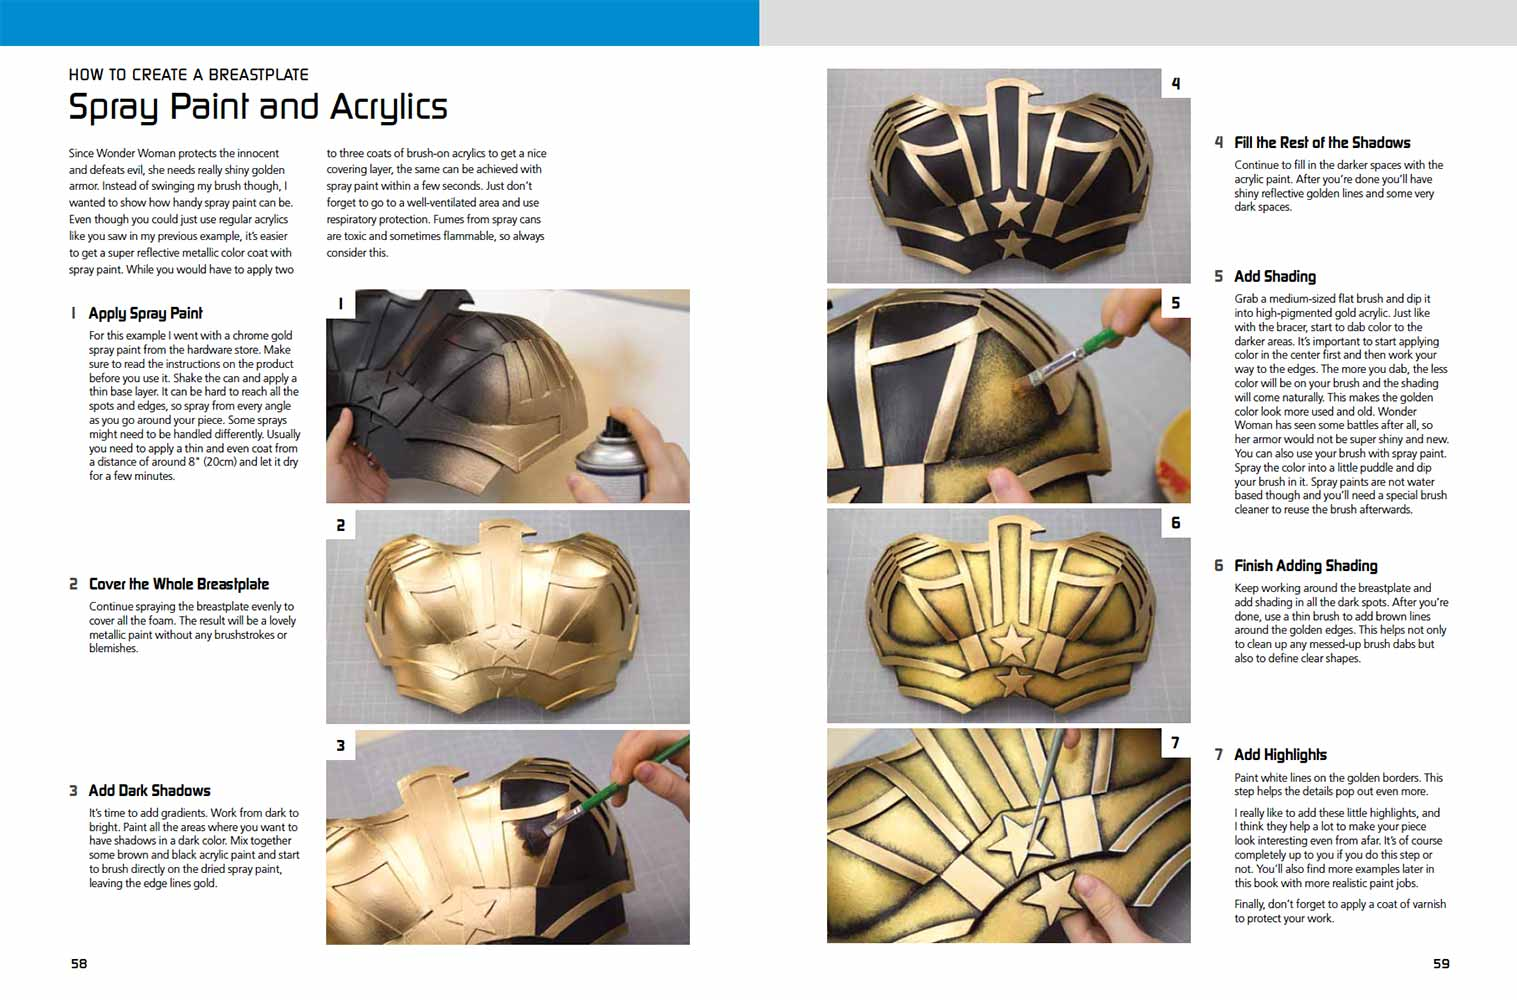 The Costume Making Guide - Armor and Props for Cosplay